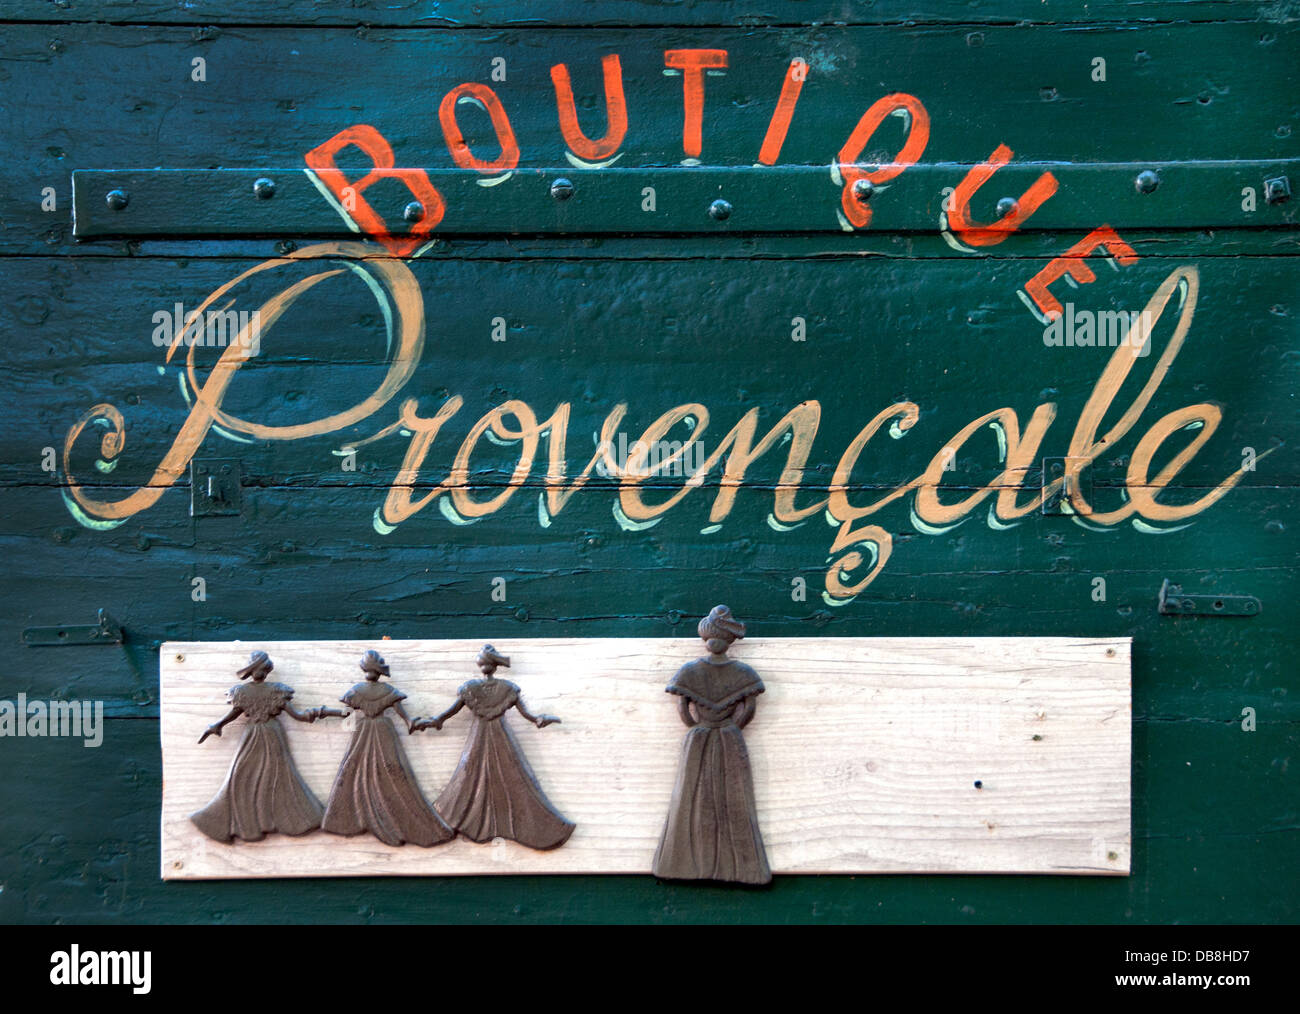 Boutique Provencale Provence Fashion Clothes France French - Stock Image